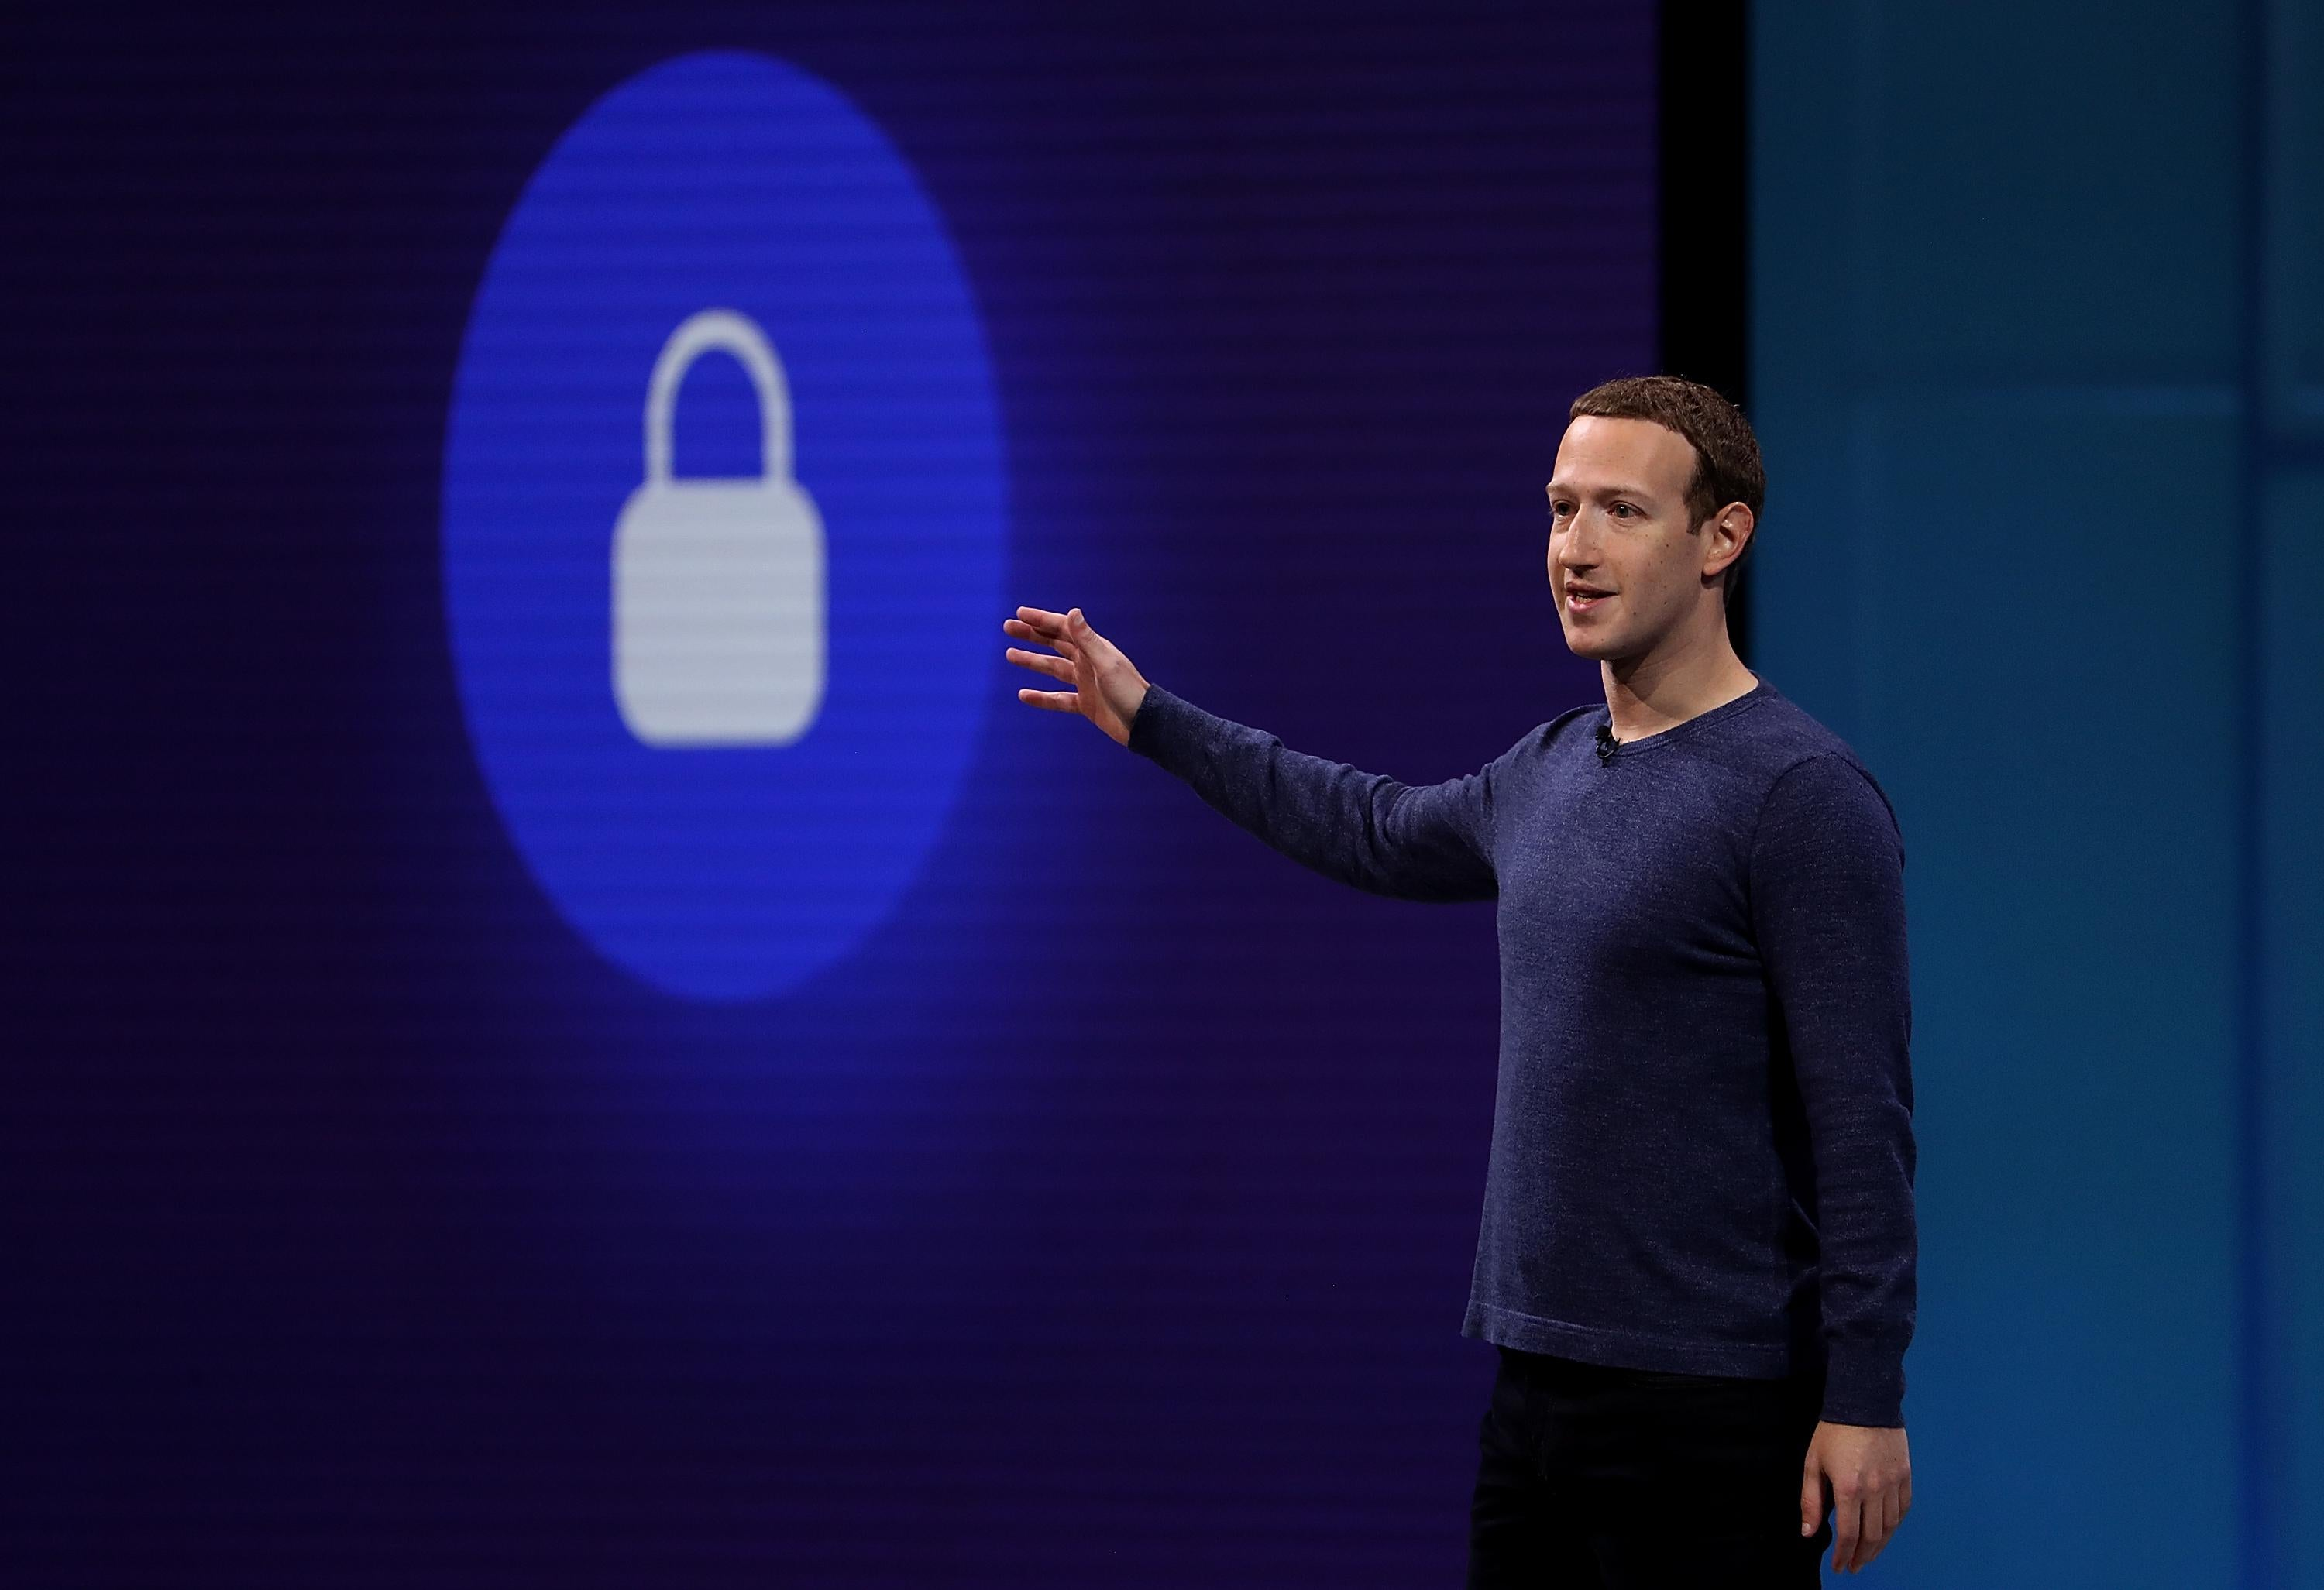 CEO Mark Zuckerberg promised in March to conduct an investigation into apps with access to large amounts of data.